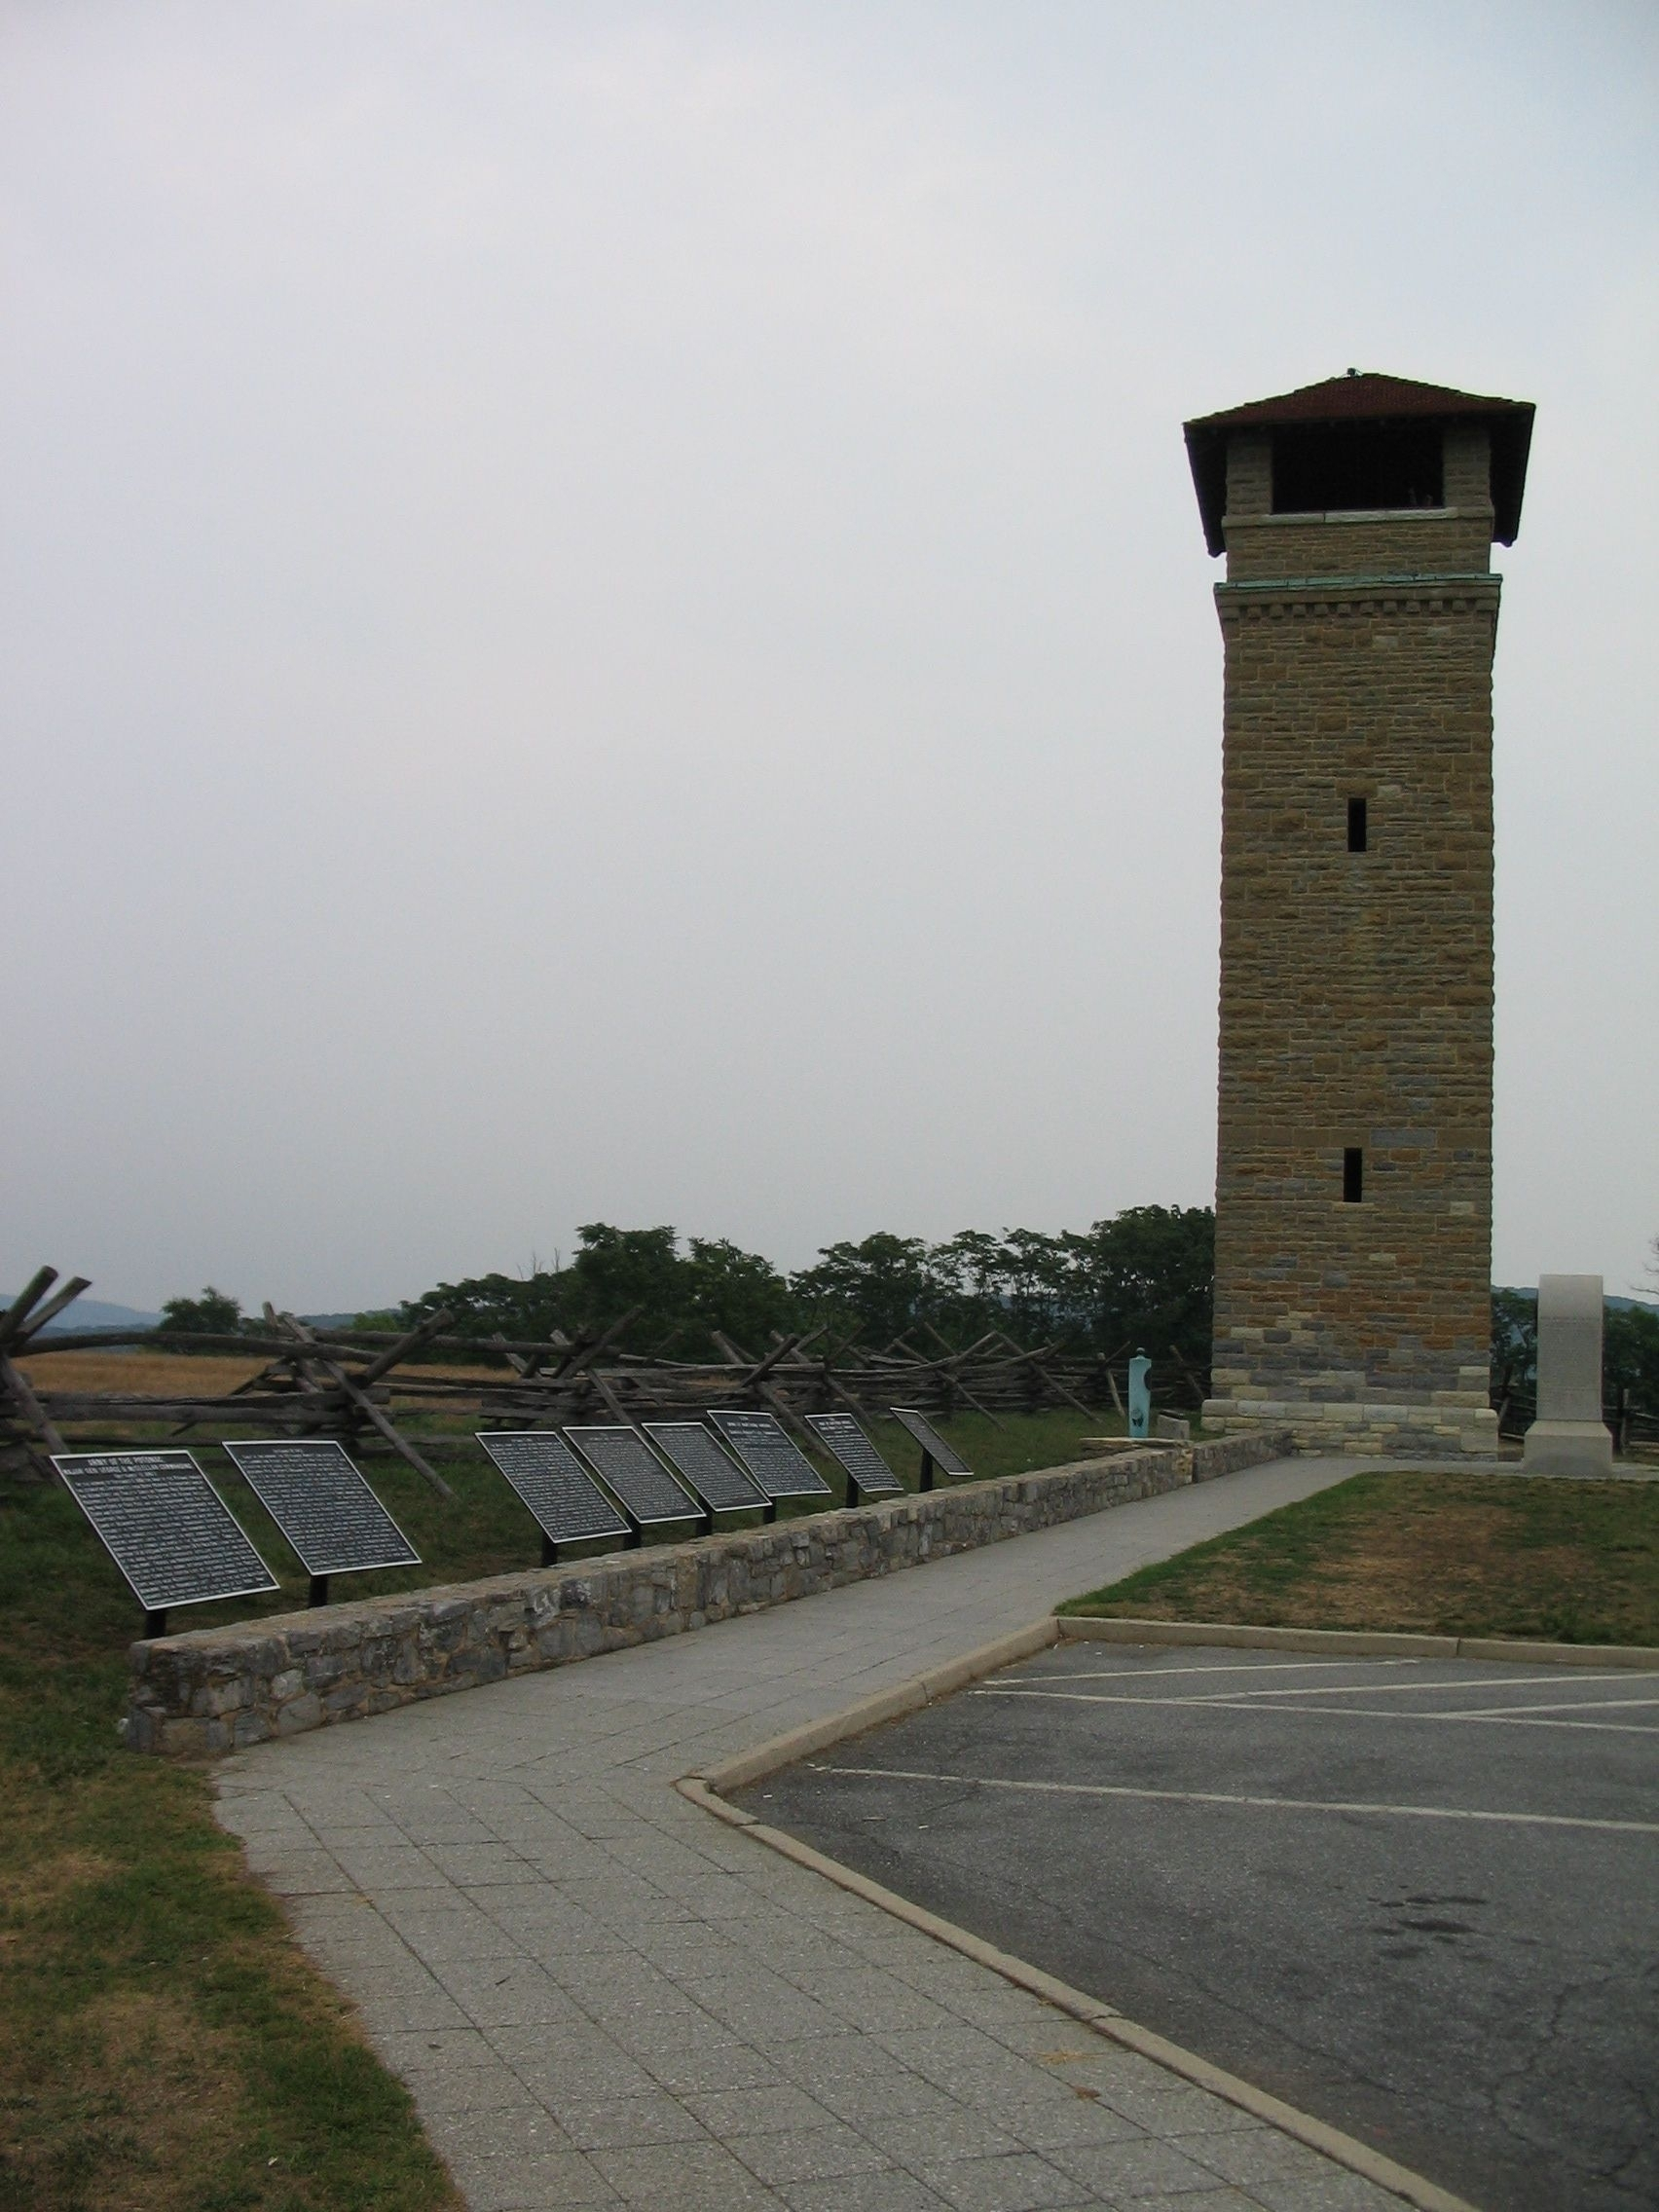 Tablet Cluster next to the Observation Tower